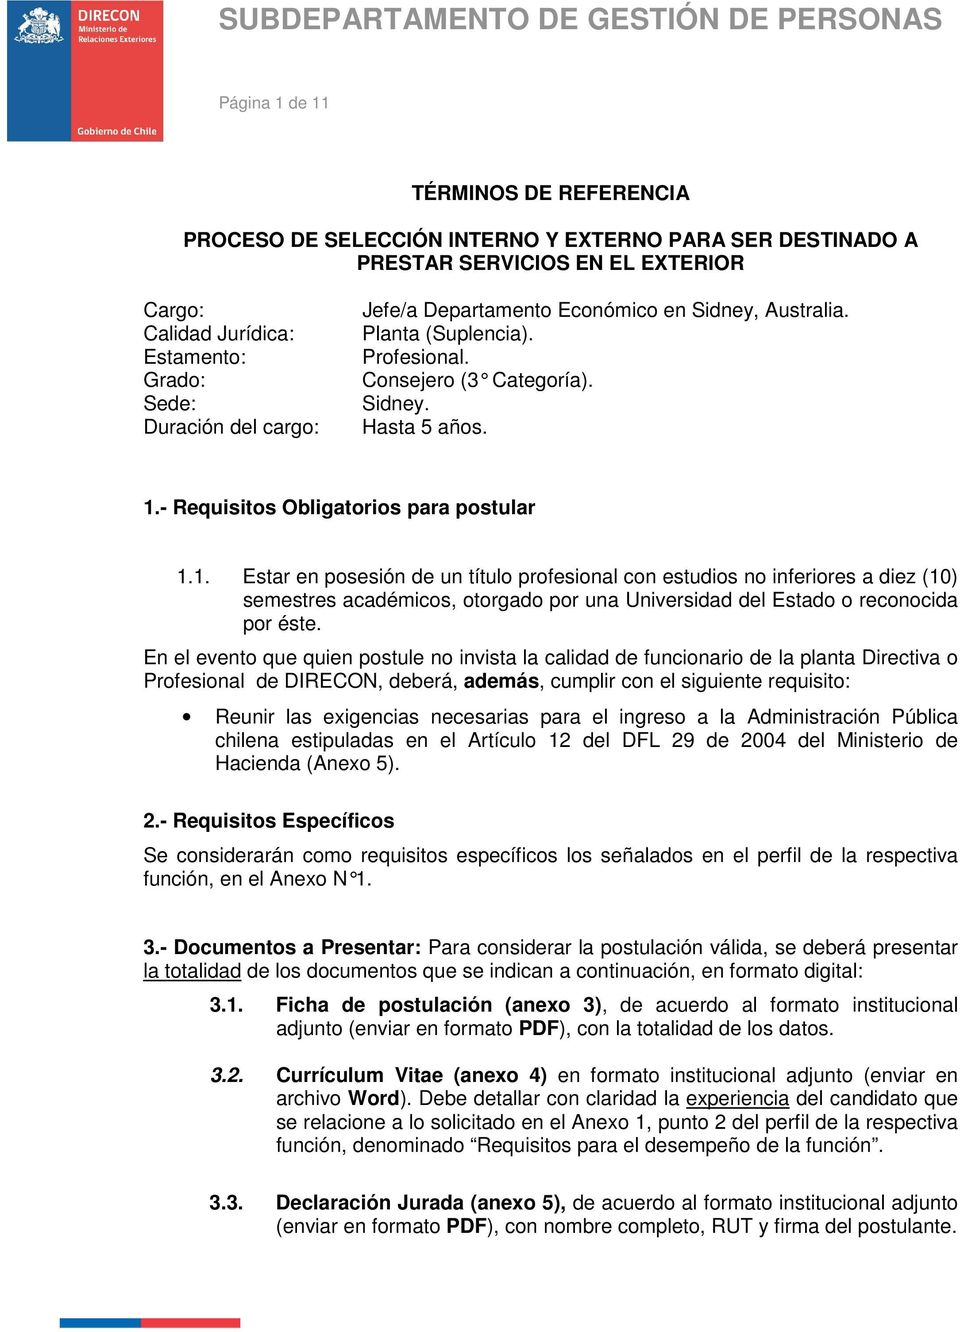 - Requisitos Obligatorios para postular 1.